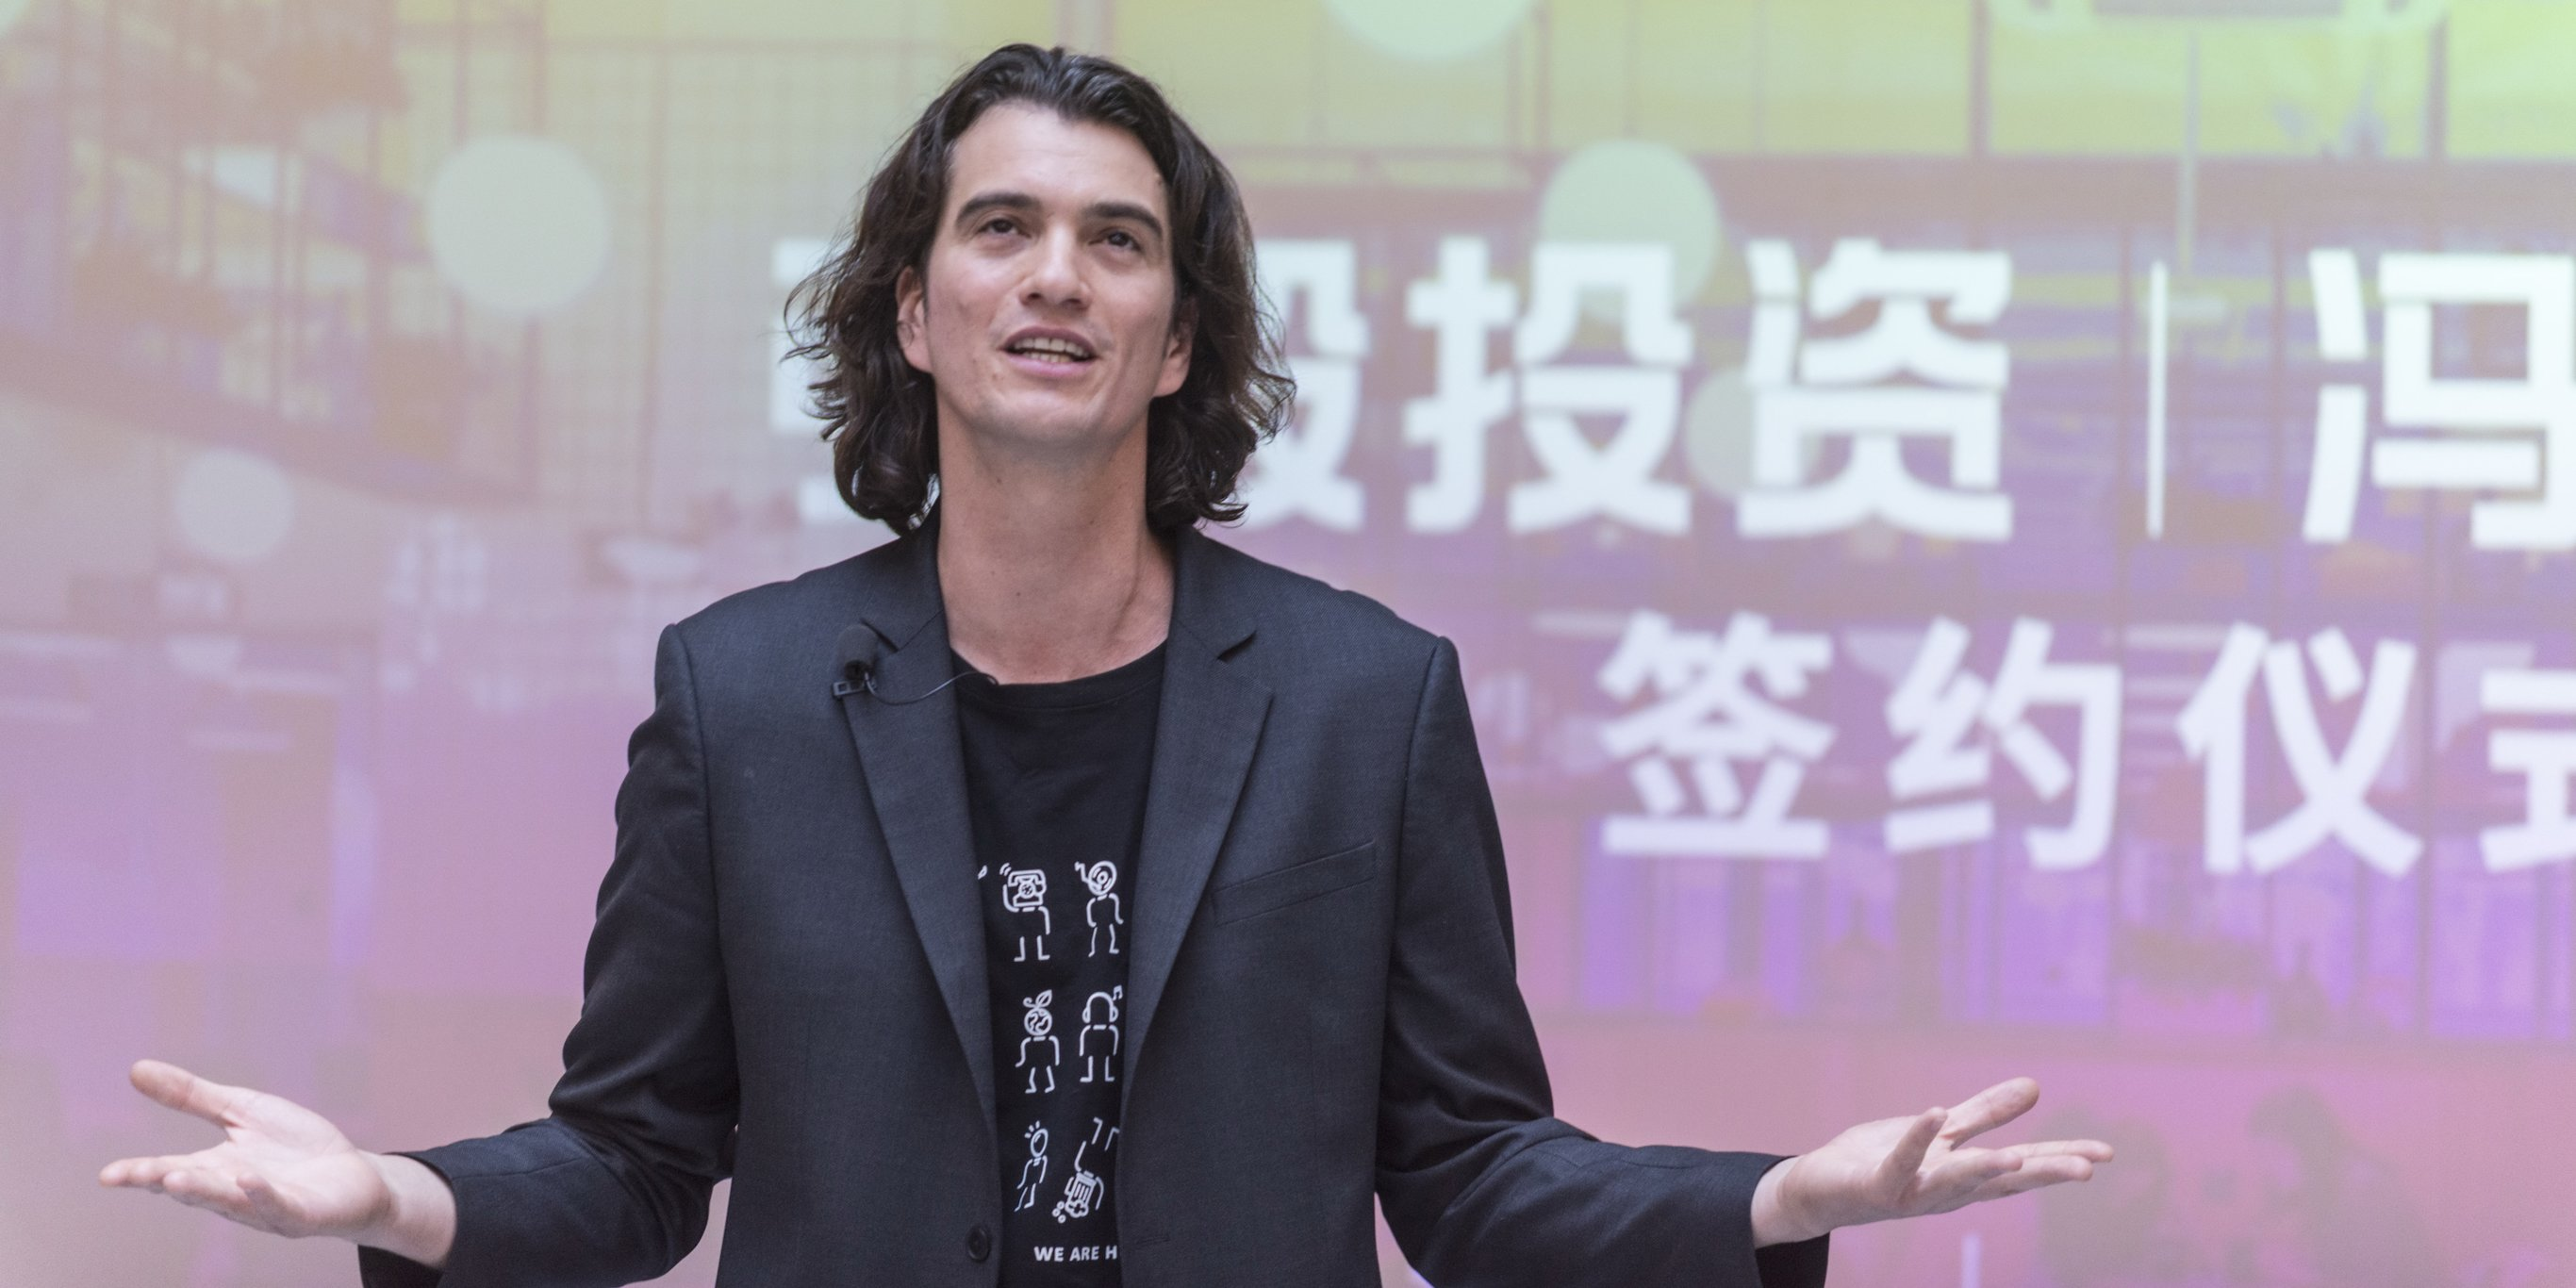 WeWork's board will have to use 'commercial pressure' to force Adam Neumann out since because he can't be fired, experts say